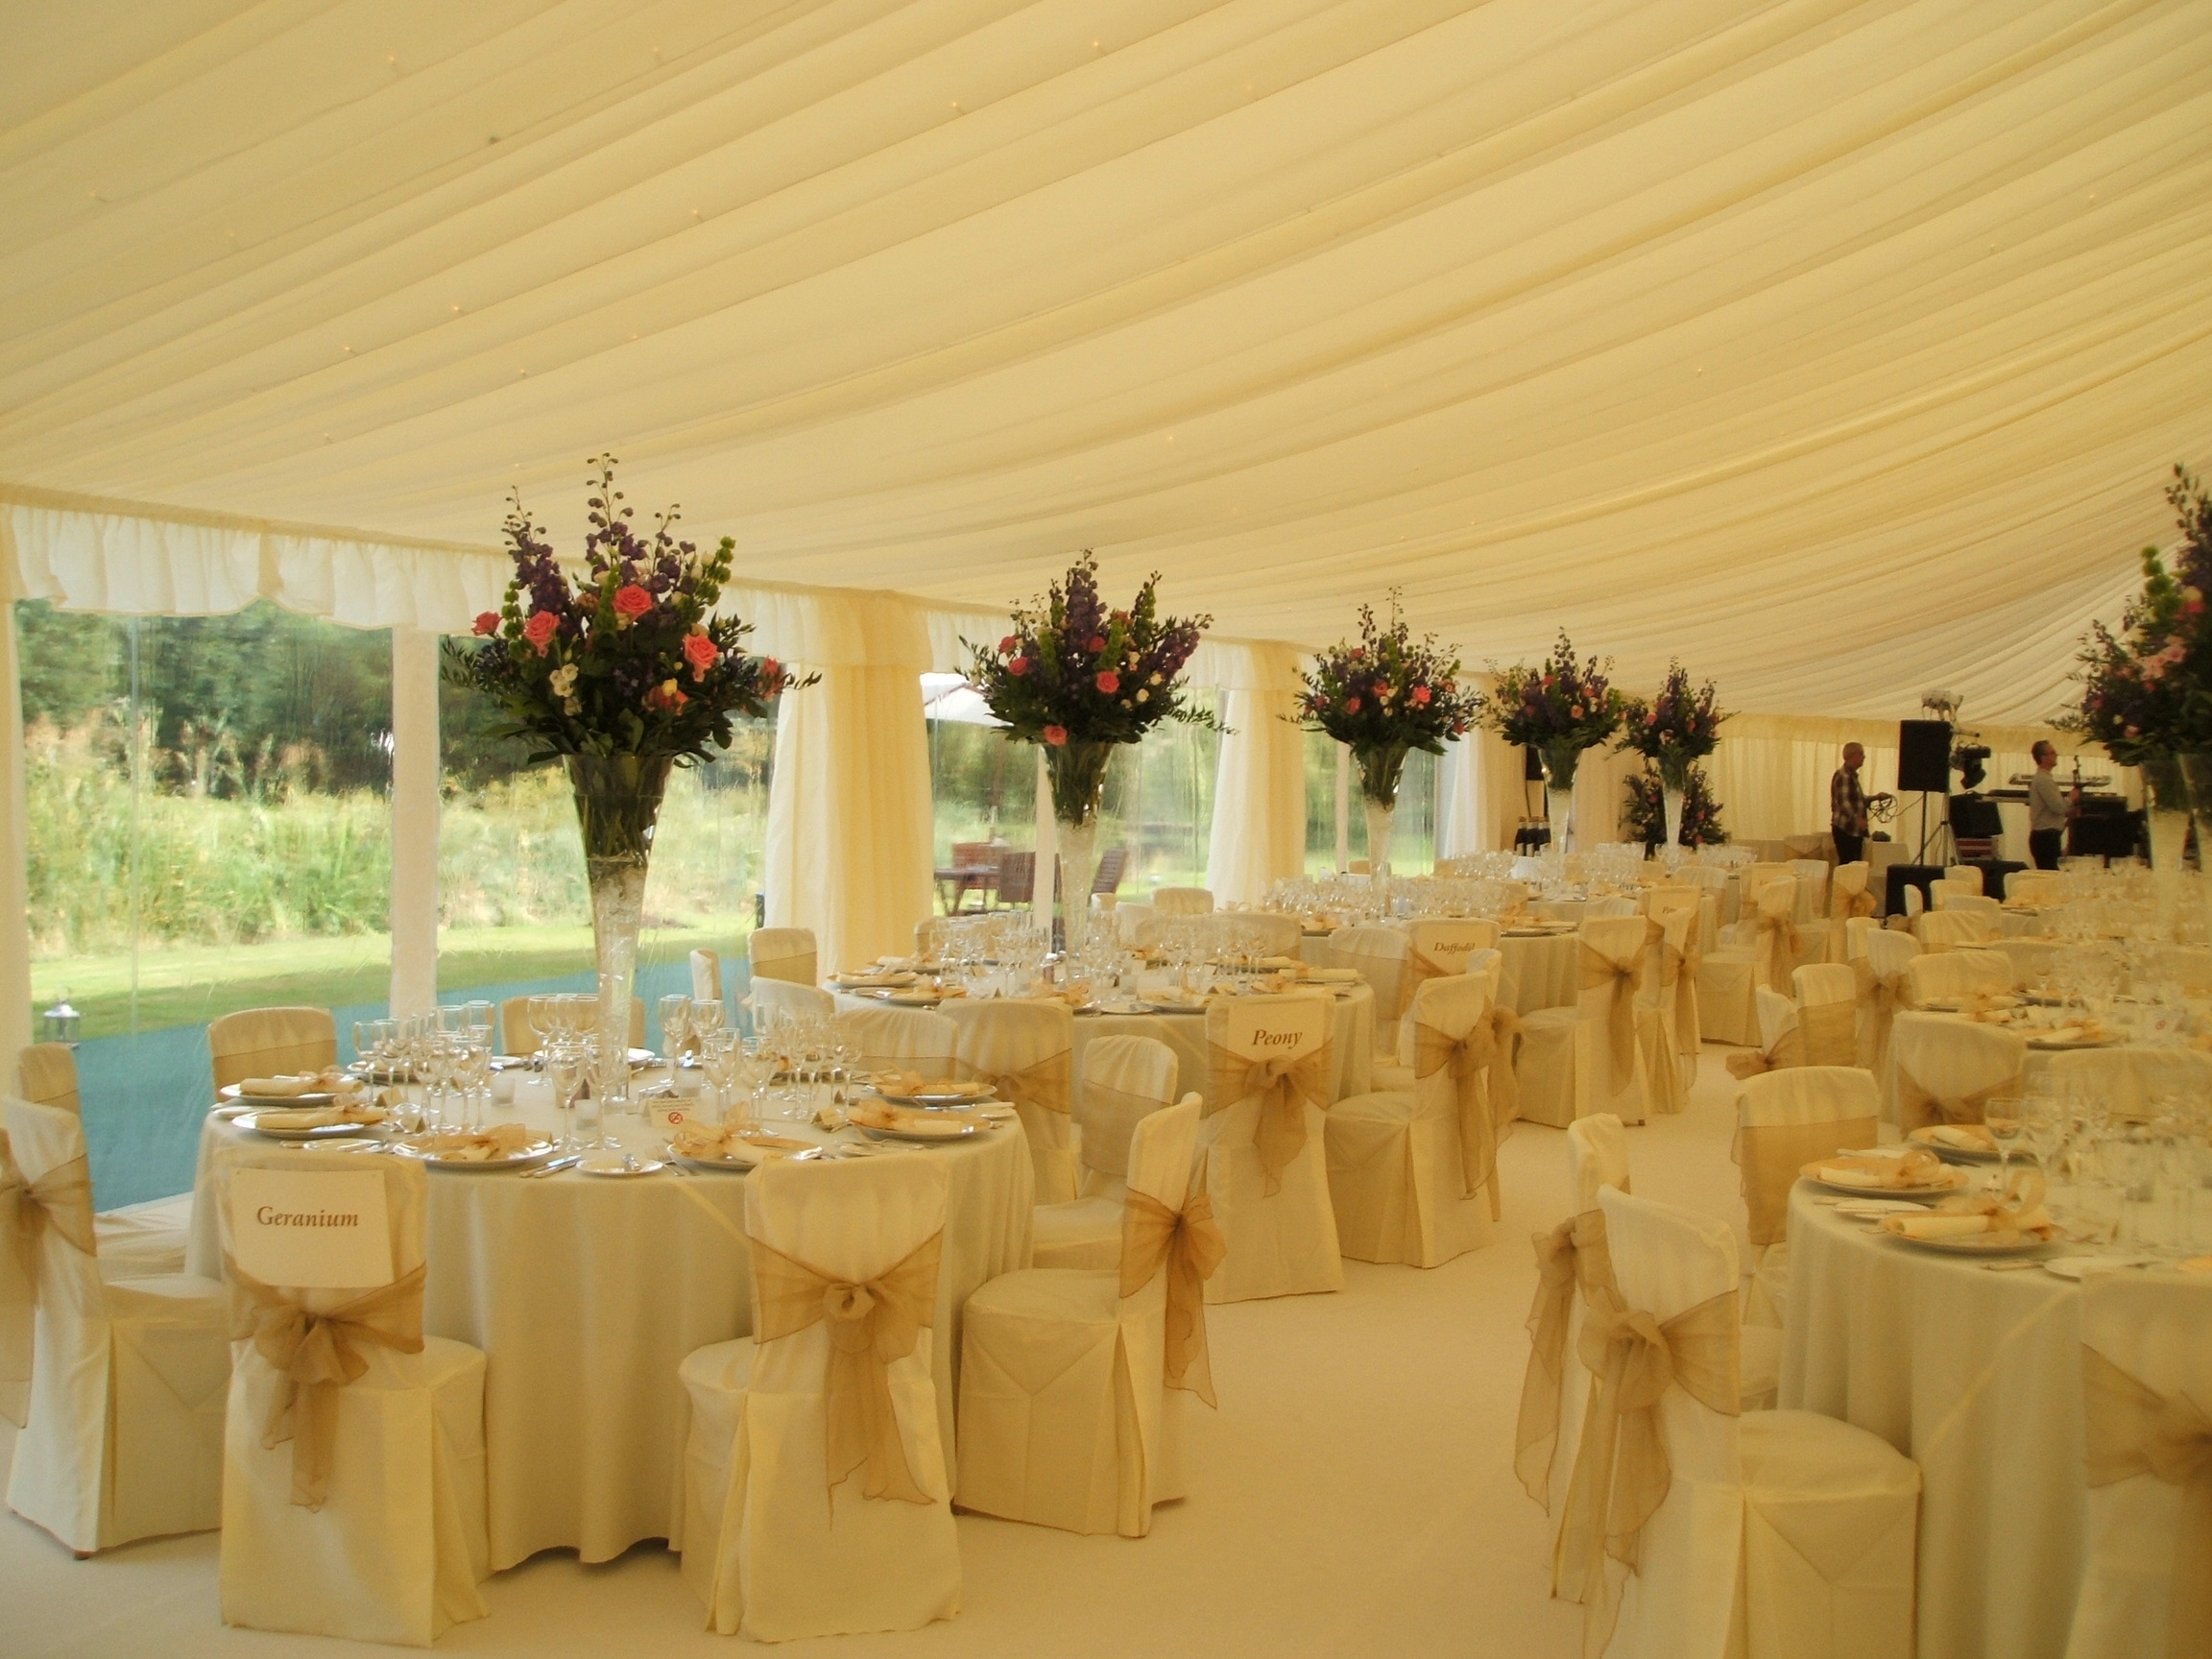 Wedding marquee hire key structures ltd for Wedding interior decoration images